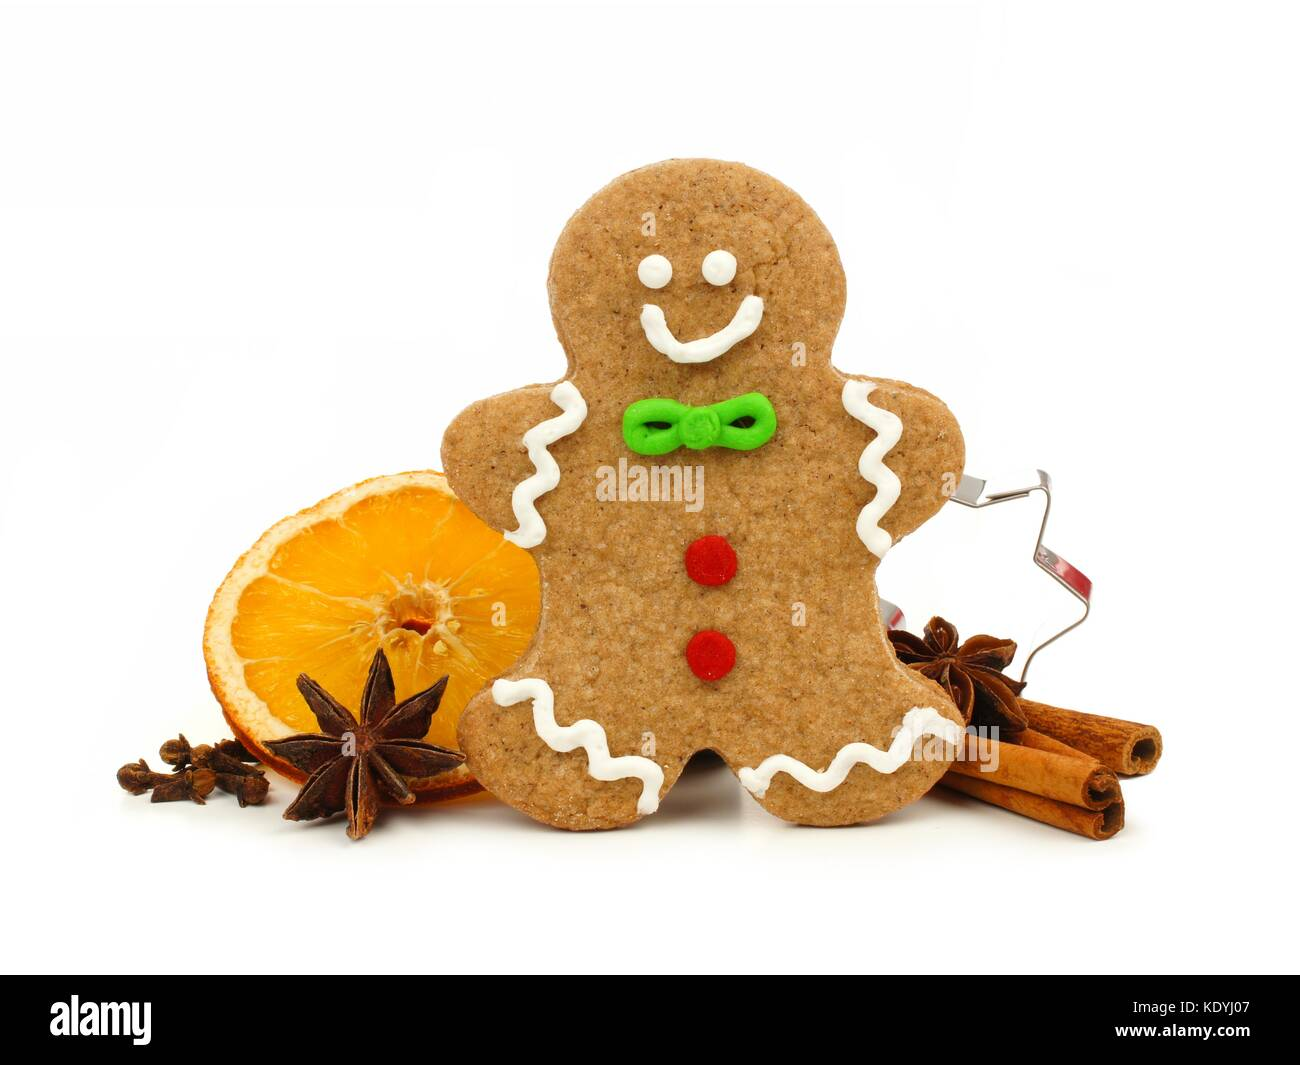 Christmas gingerbread man with cookie cutter and holiday spices isolated on a white background - Stock Image